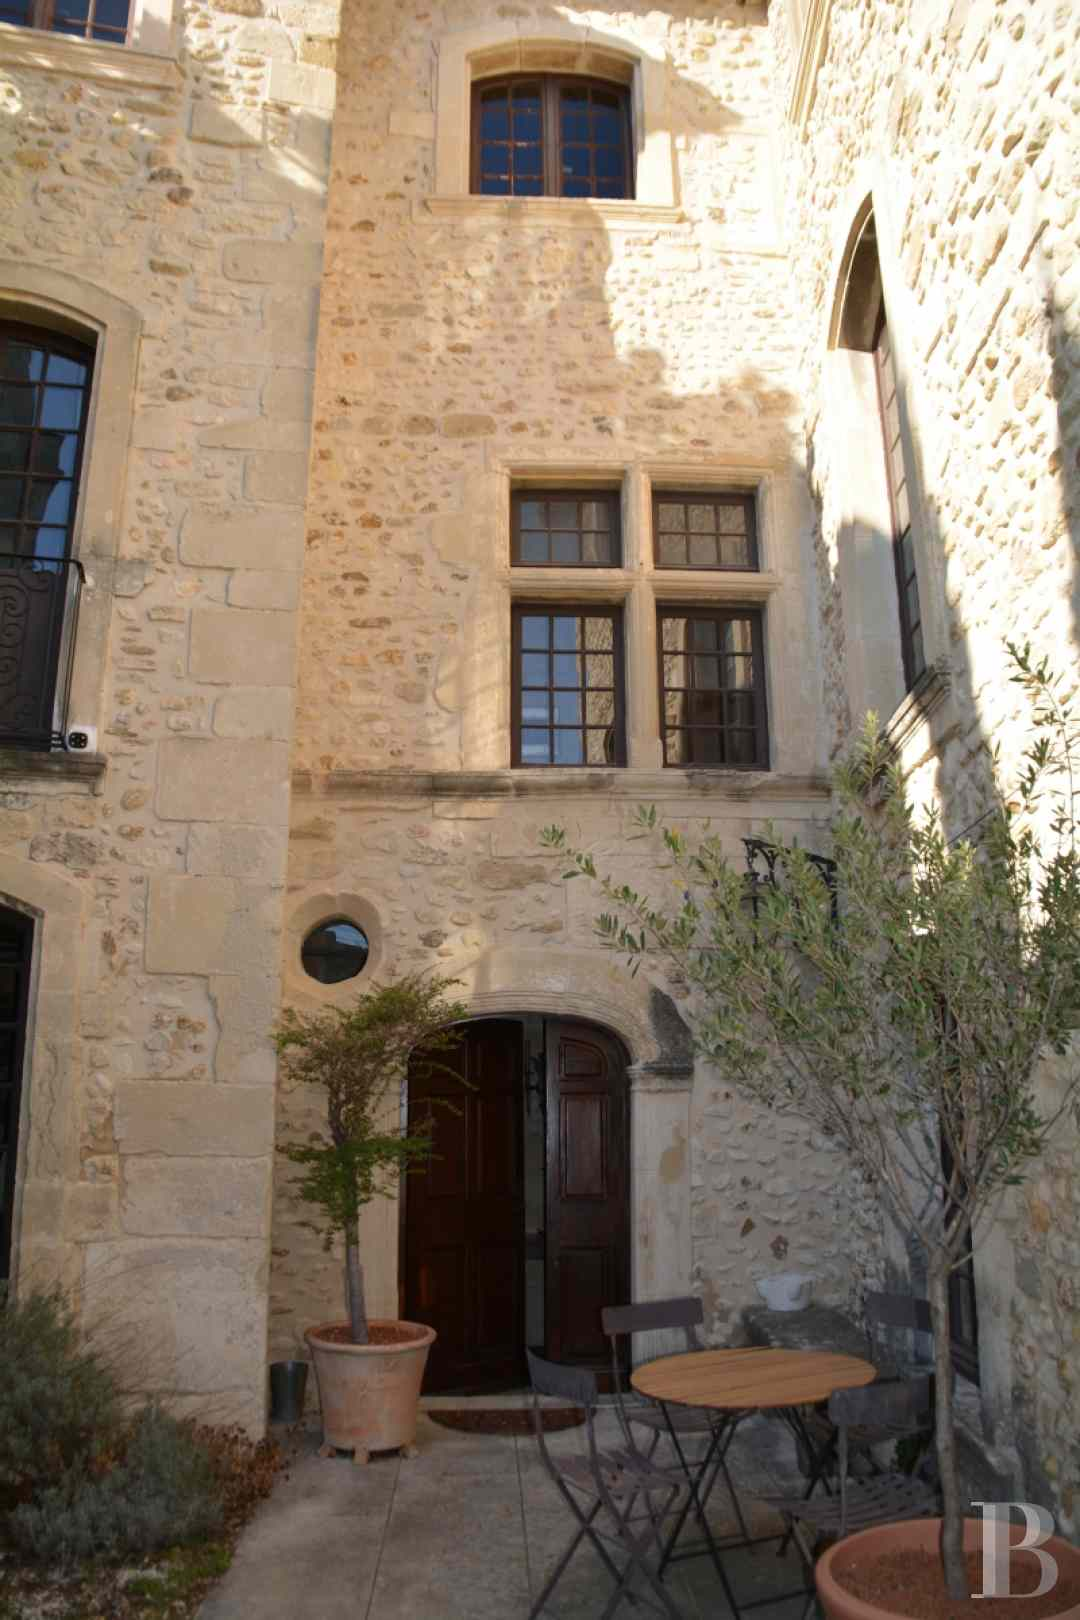 mansion houses for sale France provence cote dazur mansion houses - 3 zoom